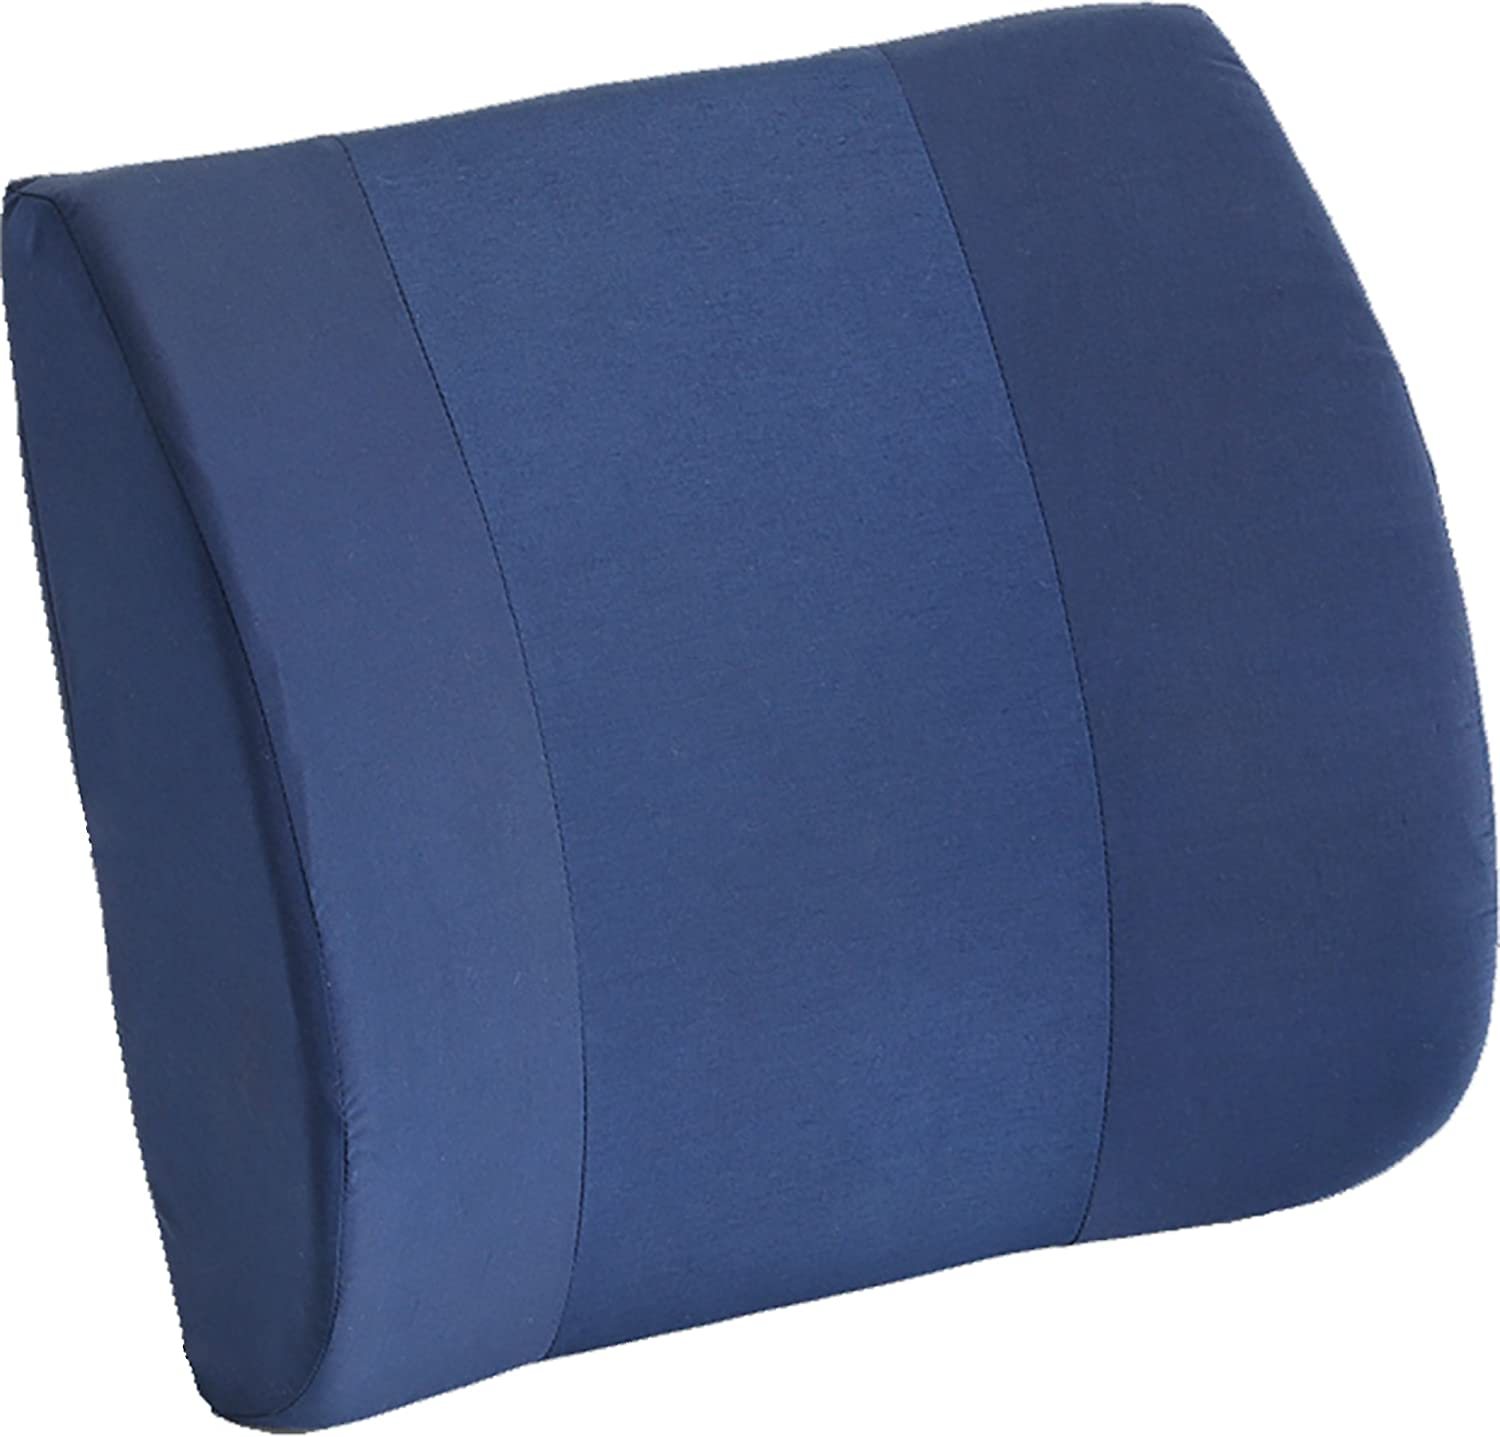 NOVA Lumbar Back Cushion, Contoured Back Support Pillow for Office Chair and Car, Removable & Washable Cover, Color: Navy Blue